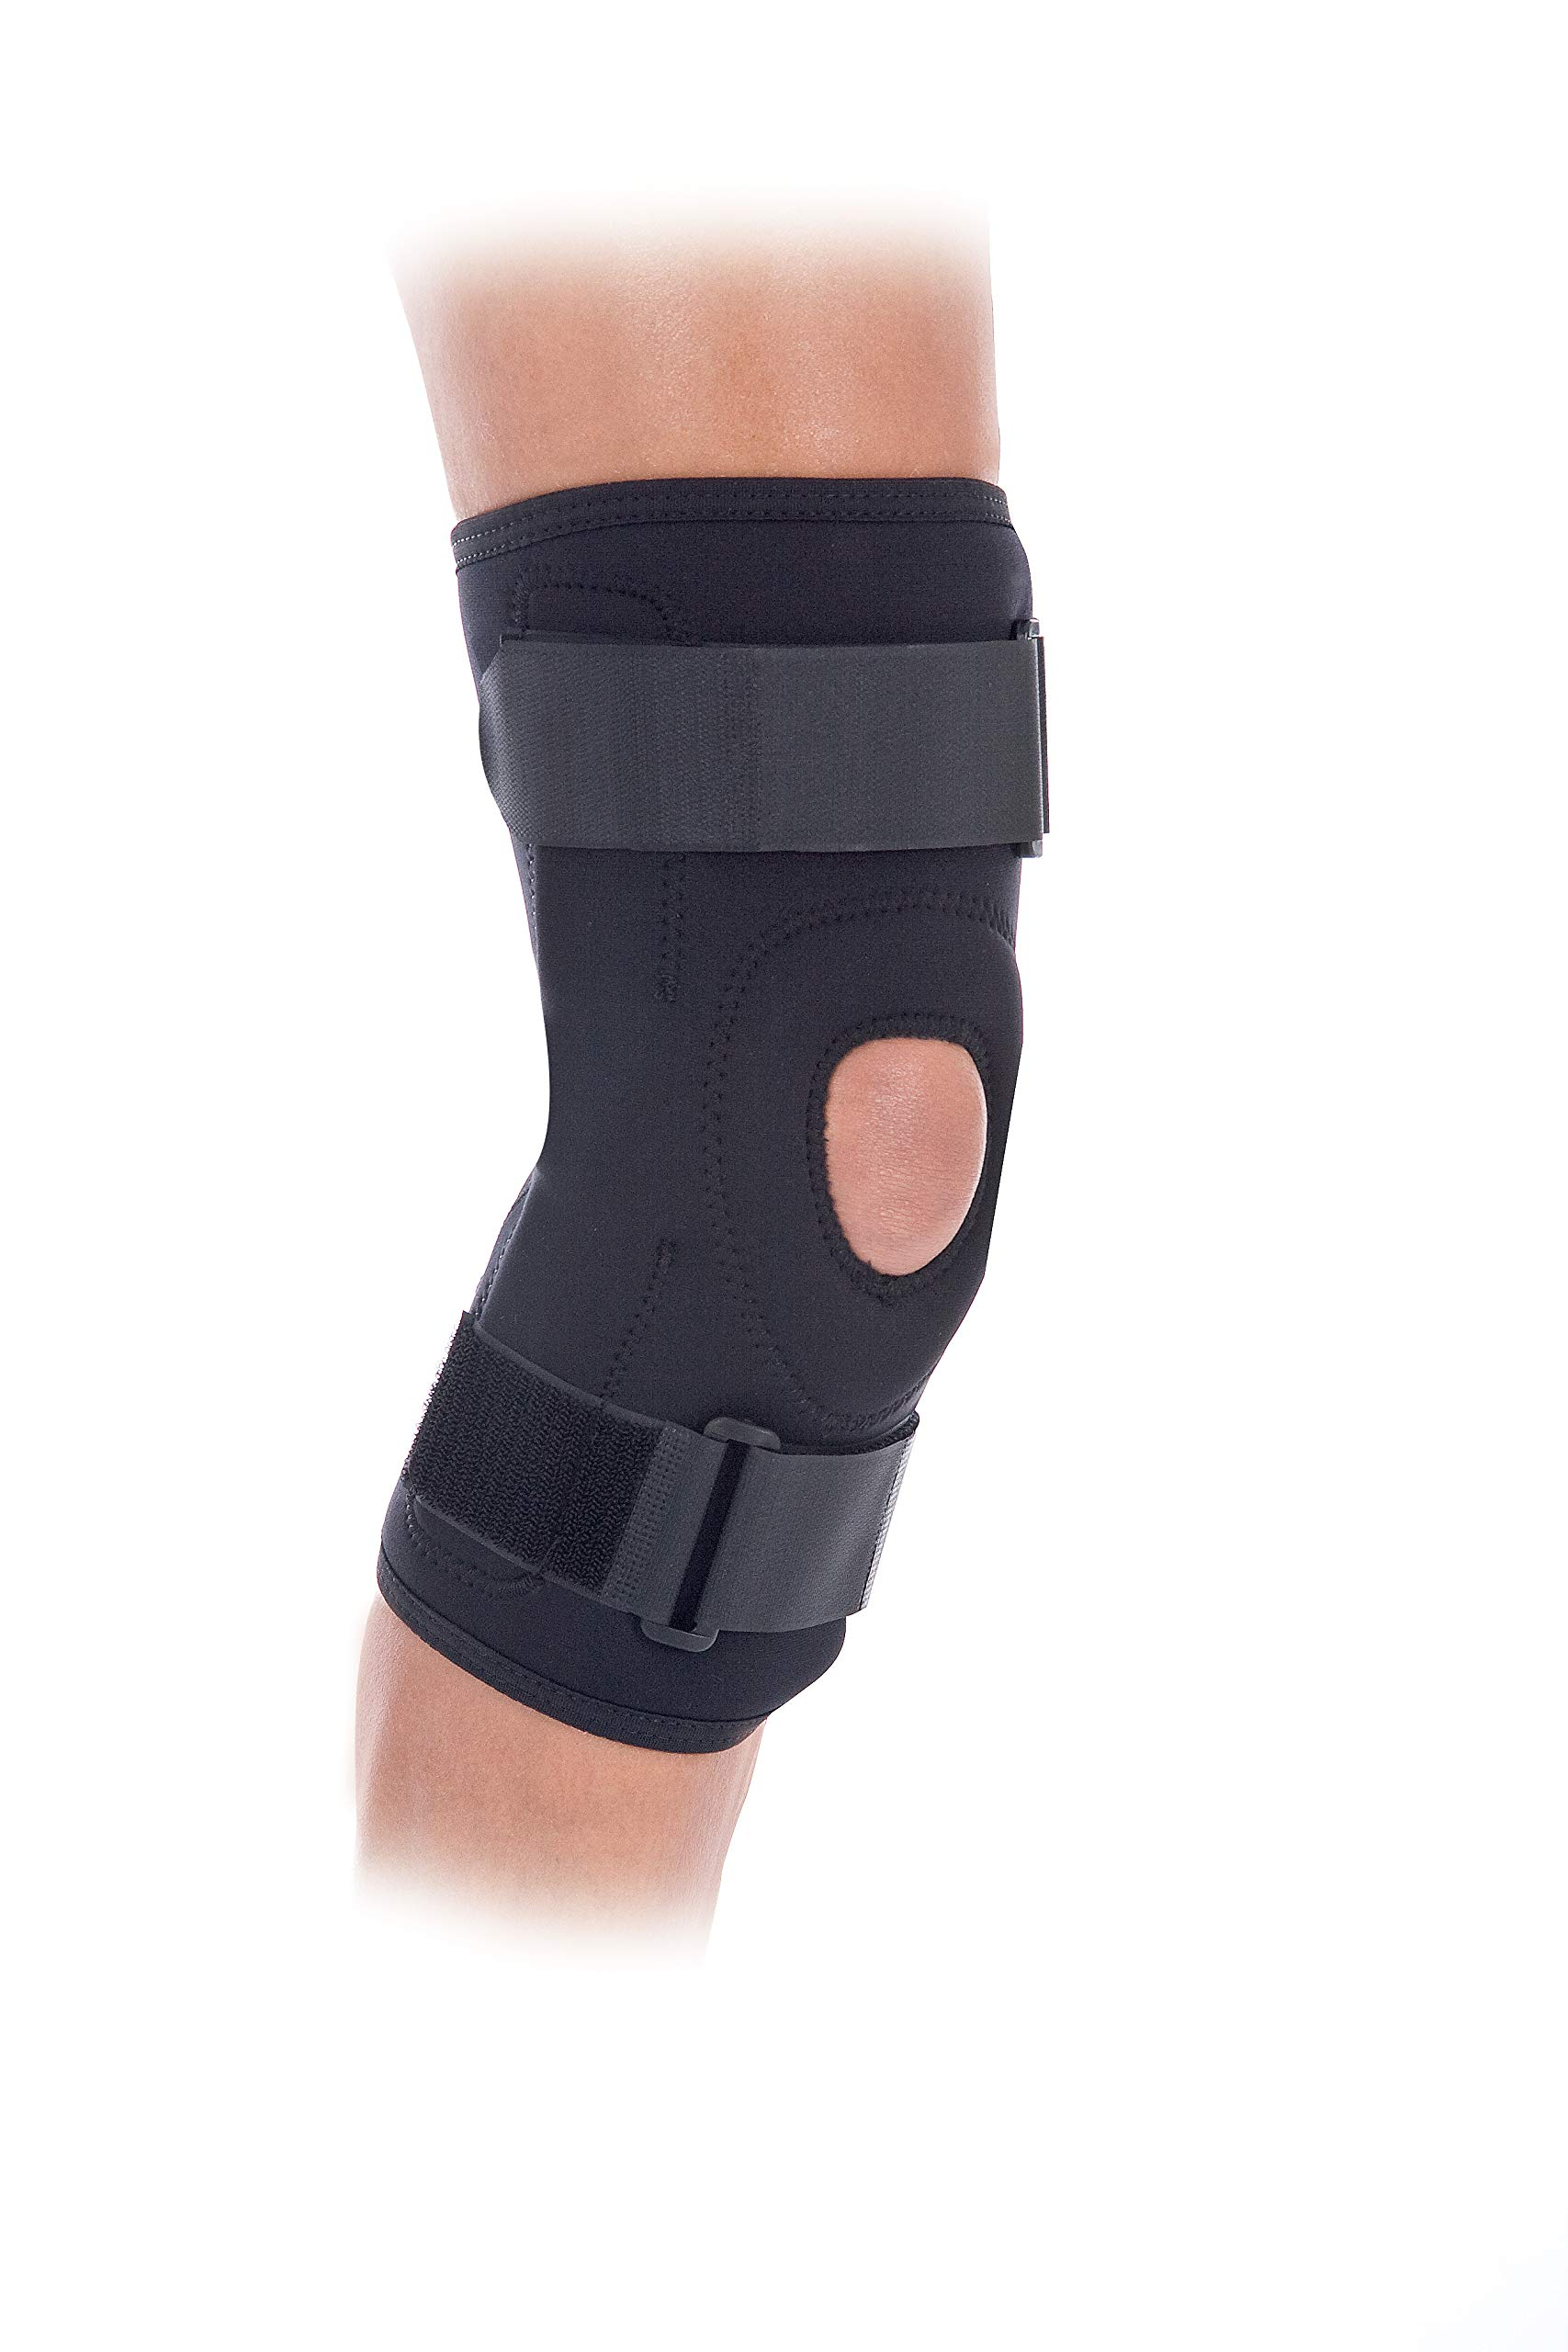 Adjustable Patella Stablizing Knee Brace, X-Large